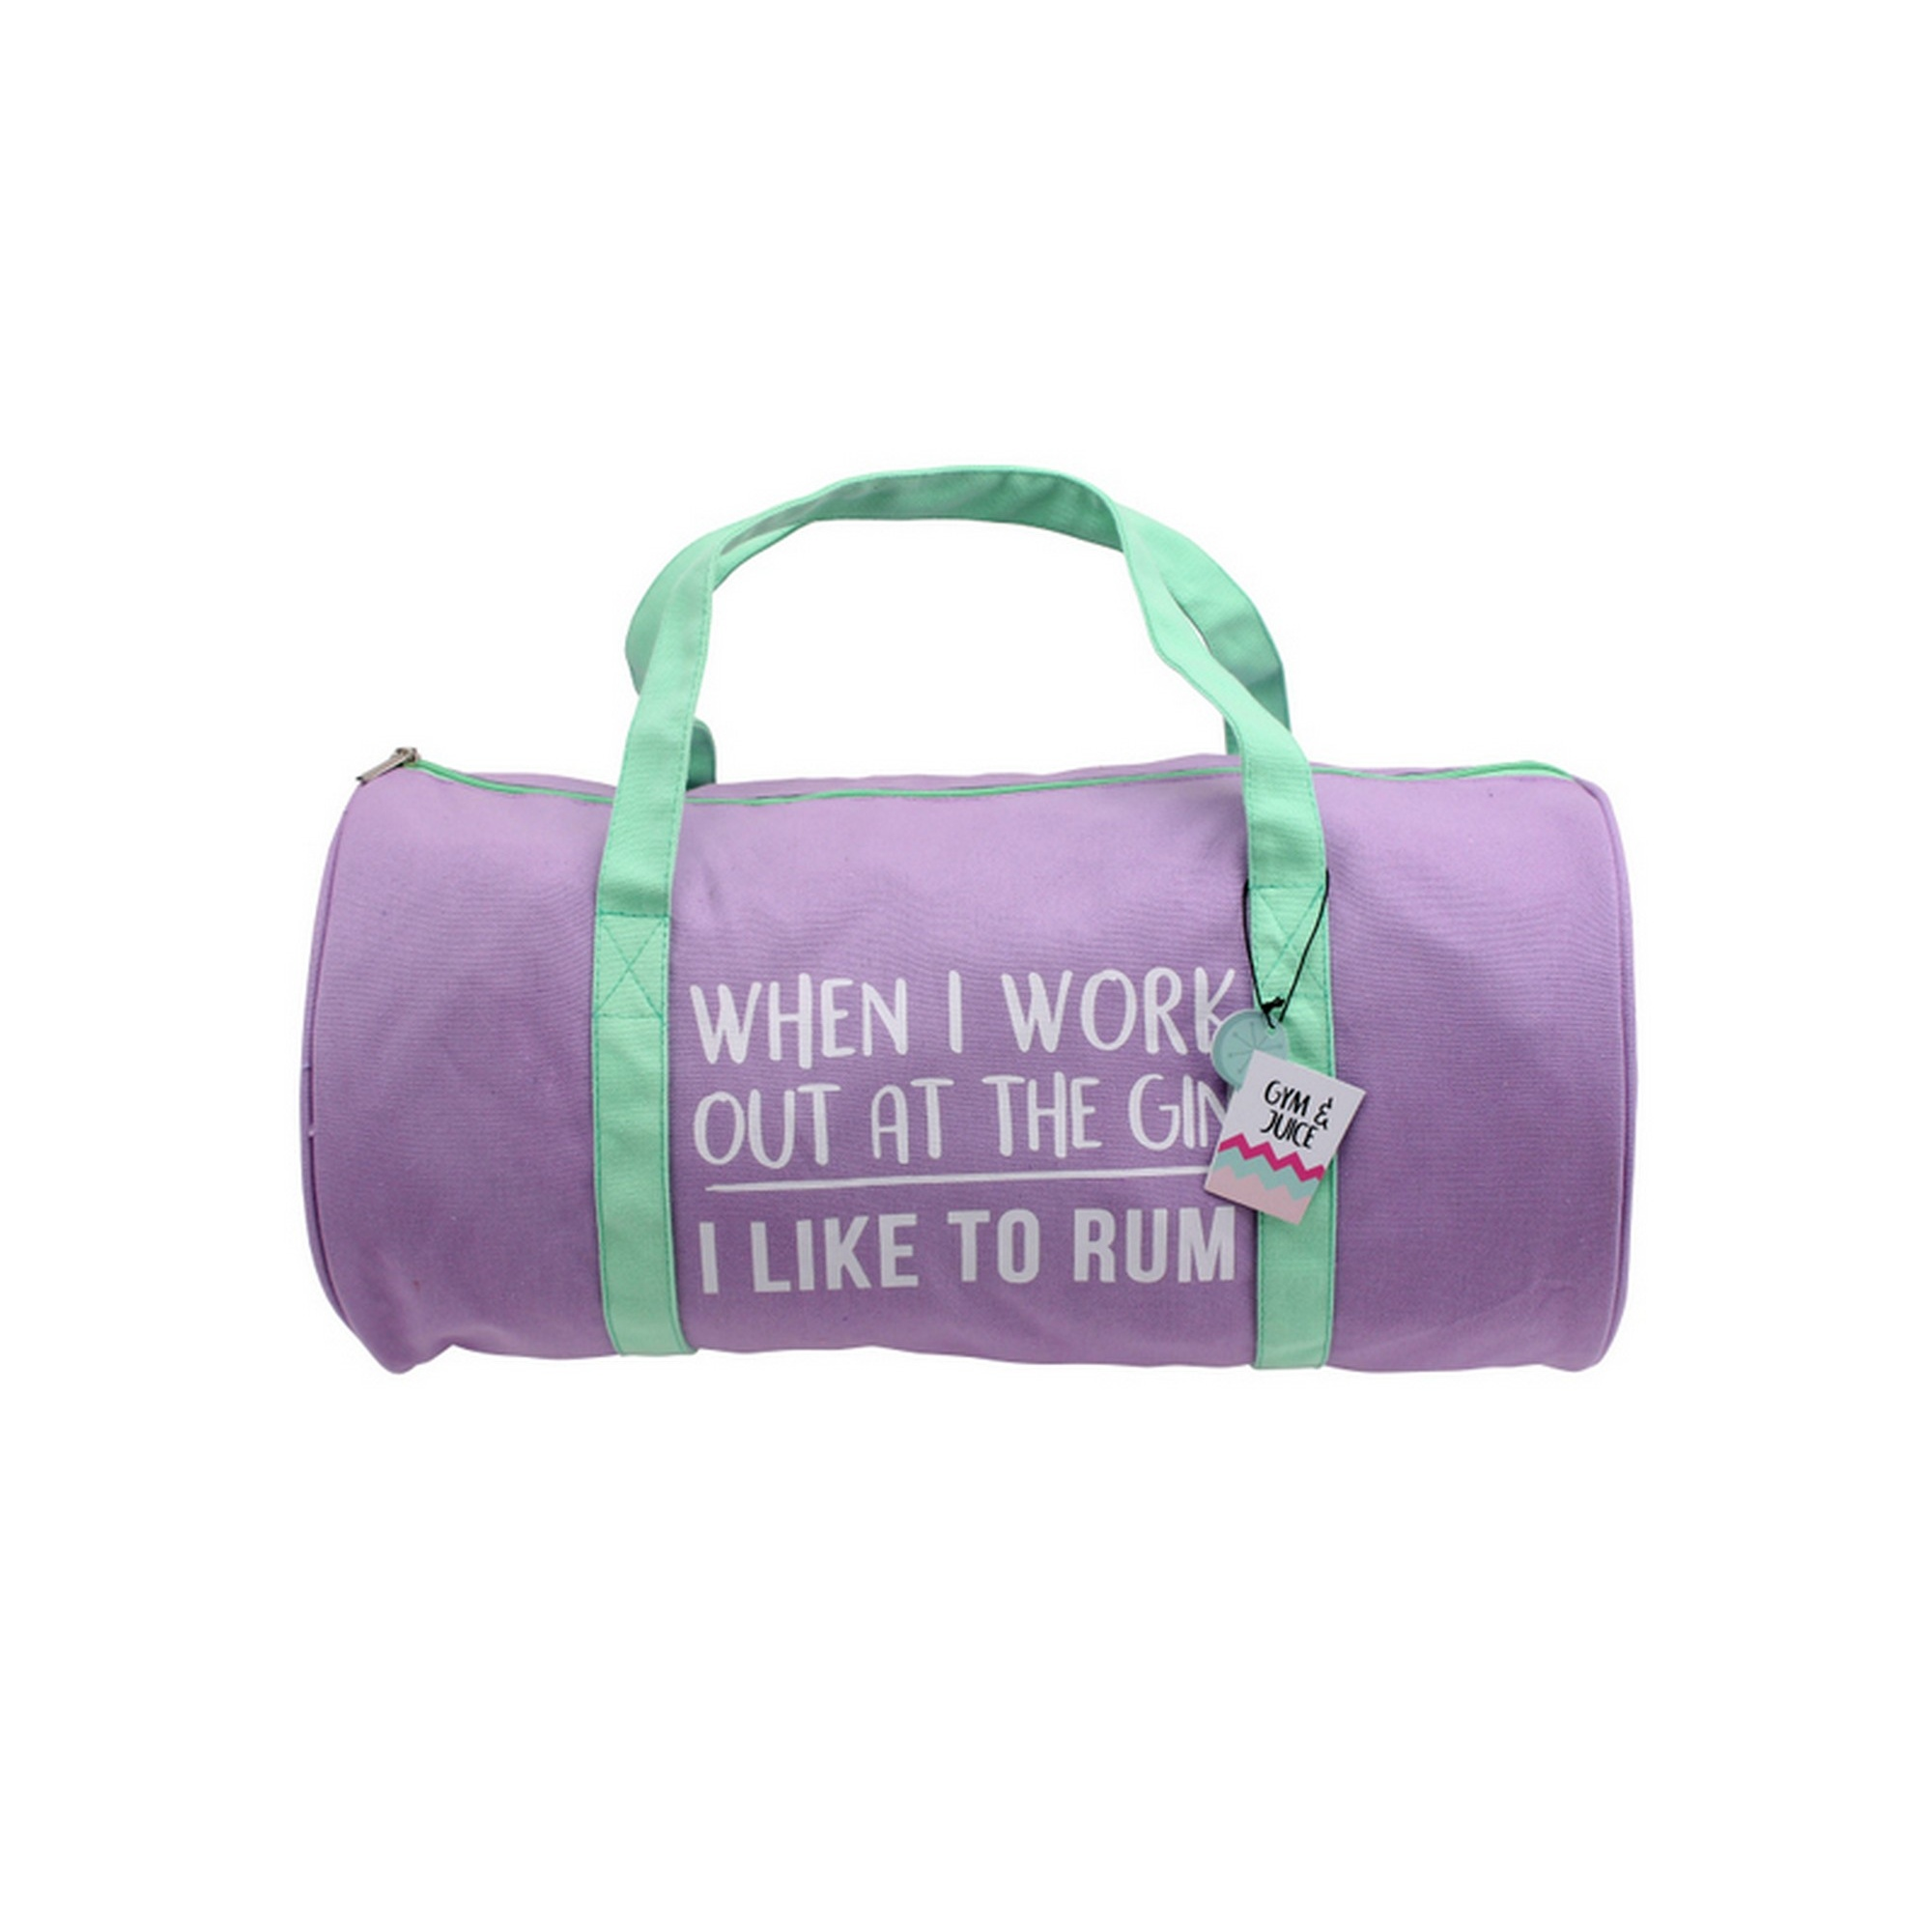 173ba33b9e21 Details about CGB Giftware Gym And Tonic I Like To Rum Duffle Bag (CB609)